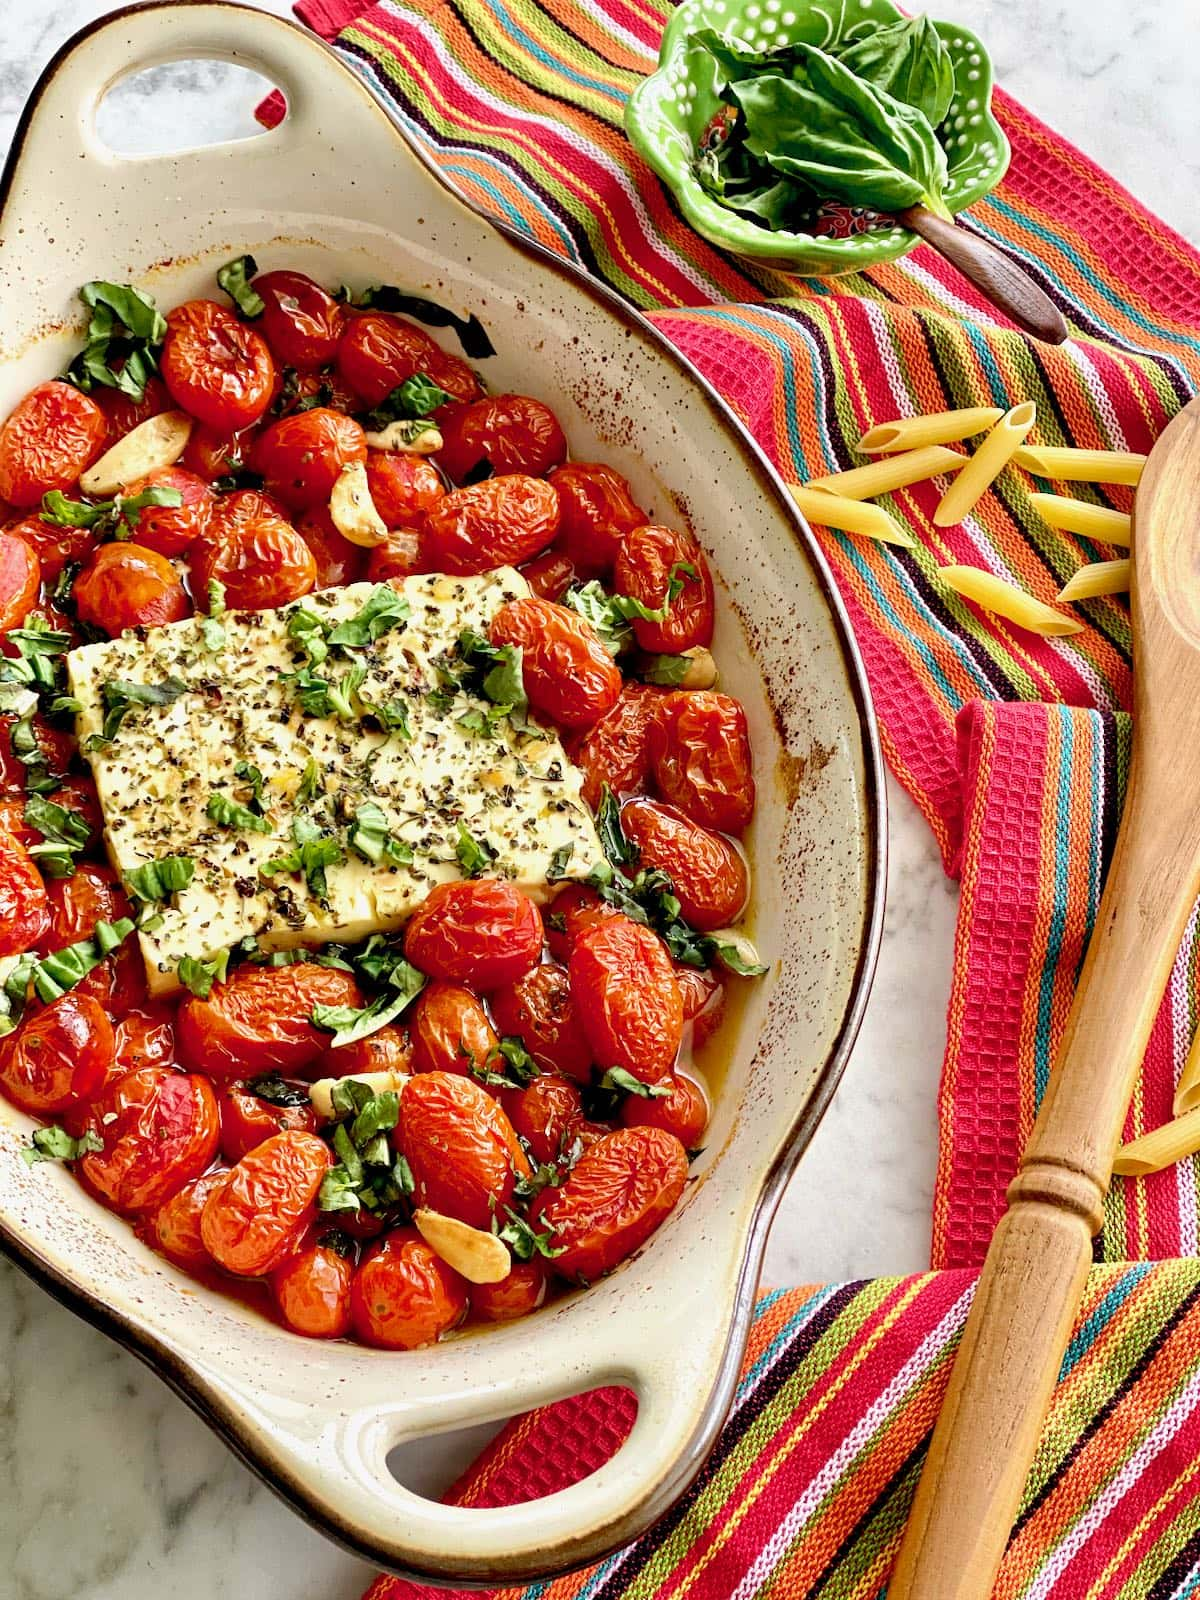 baked feta and tomatoes coming out of the oven.